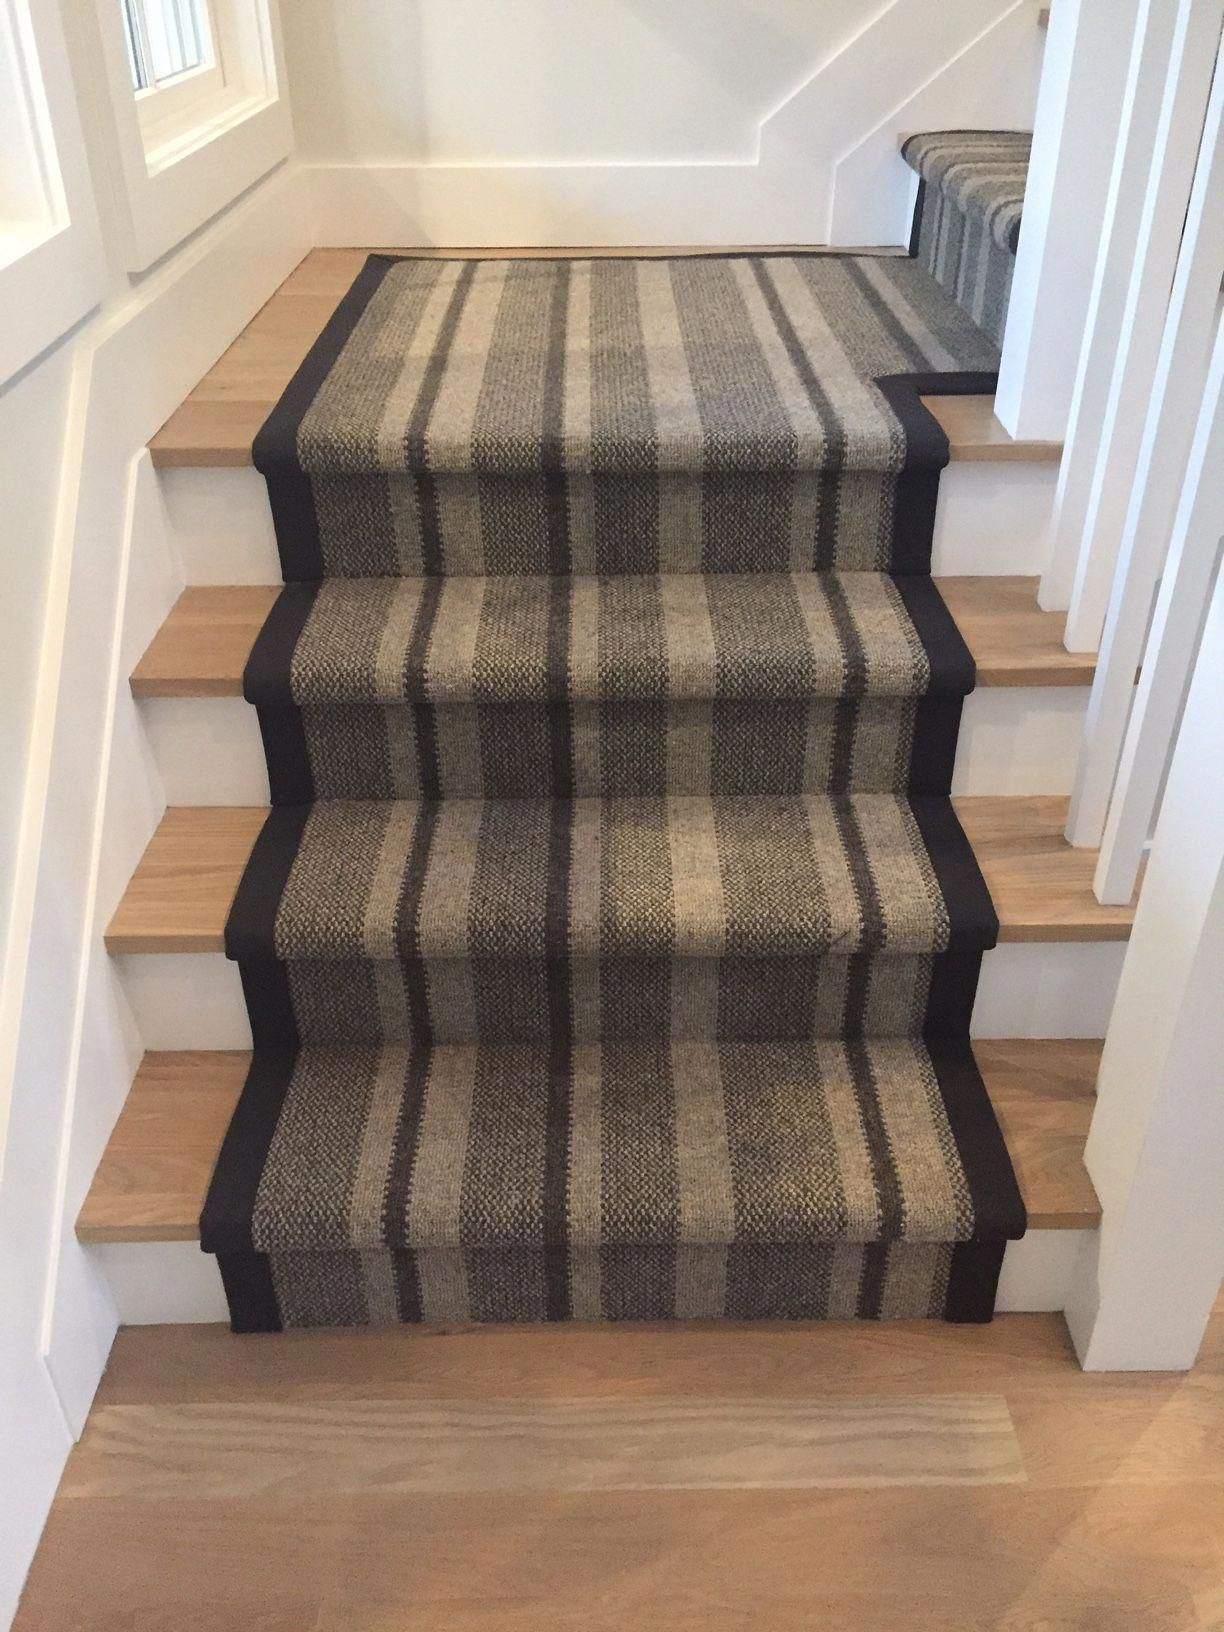 Stair Rods For Carpet Runners Carpetrunners3ftwide Howmuchdocarpetrunnerscost Stair Runner Carpet Carpet Runner Discount Carpet